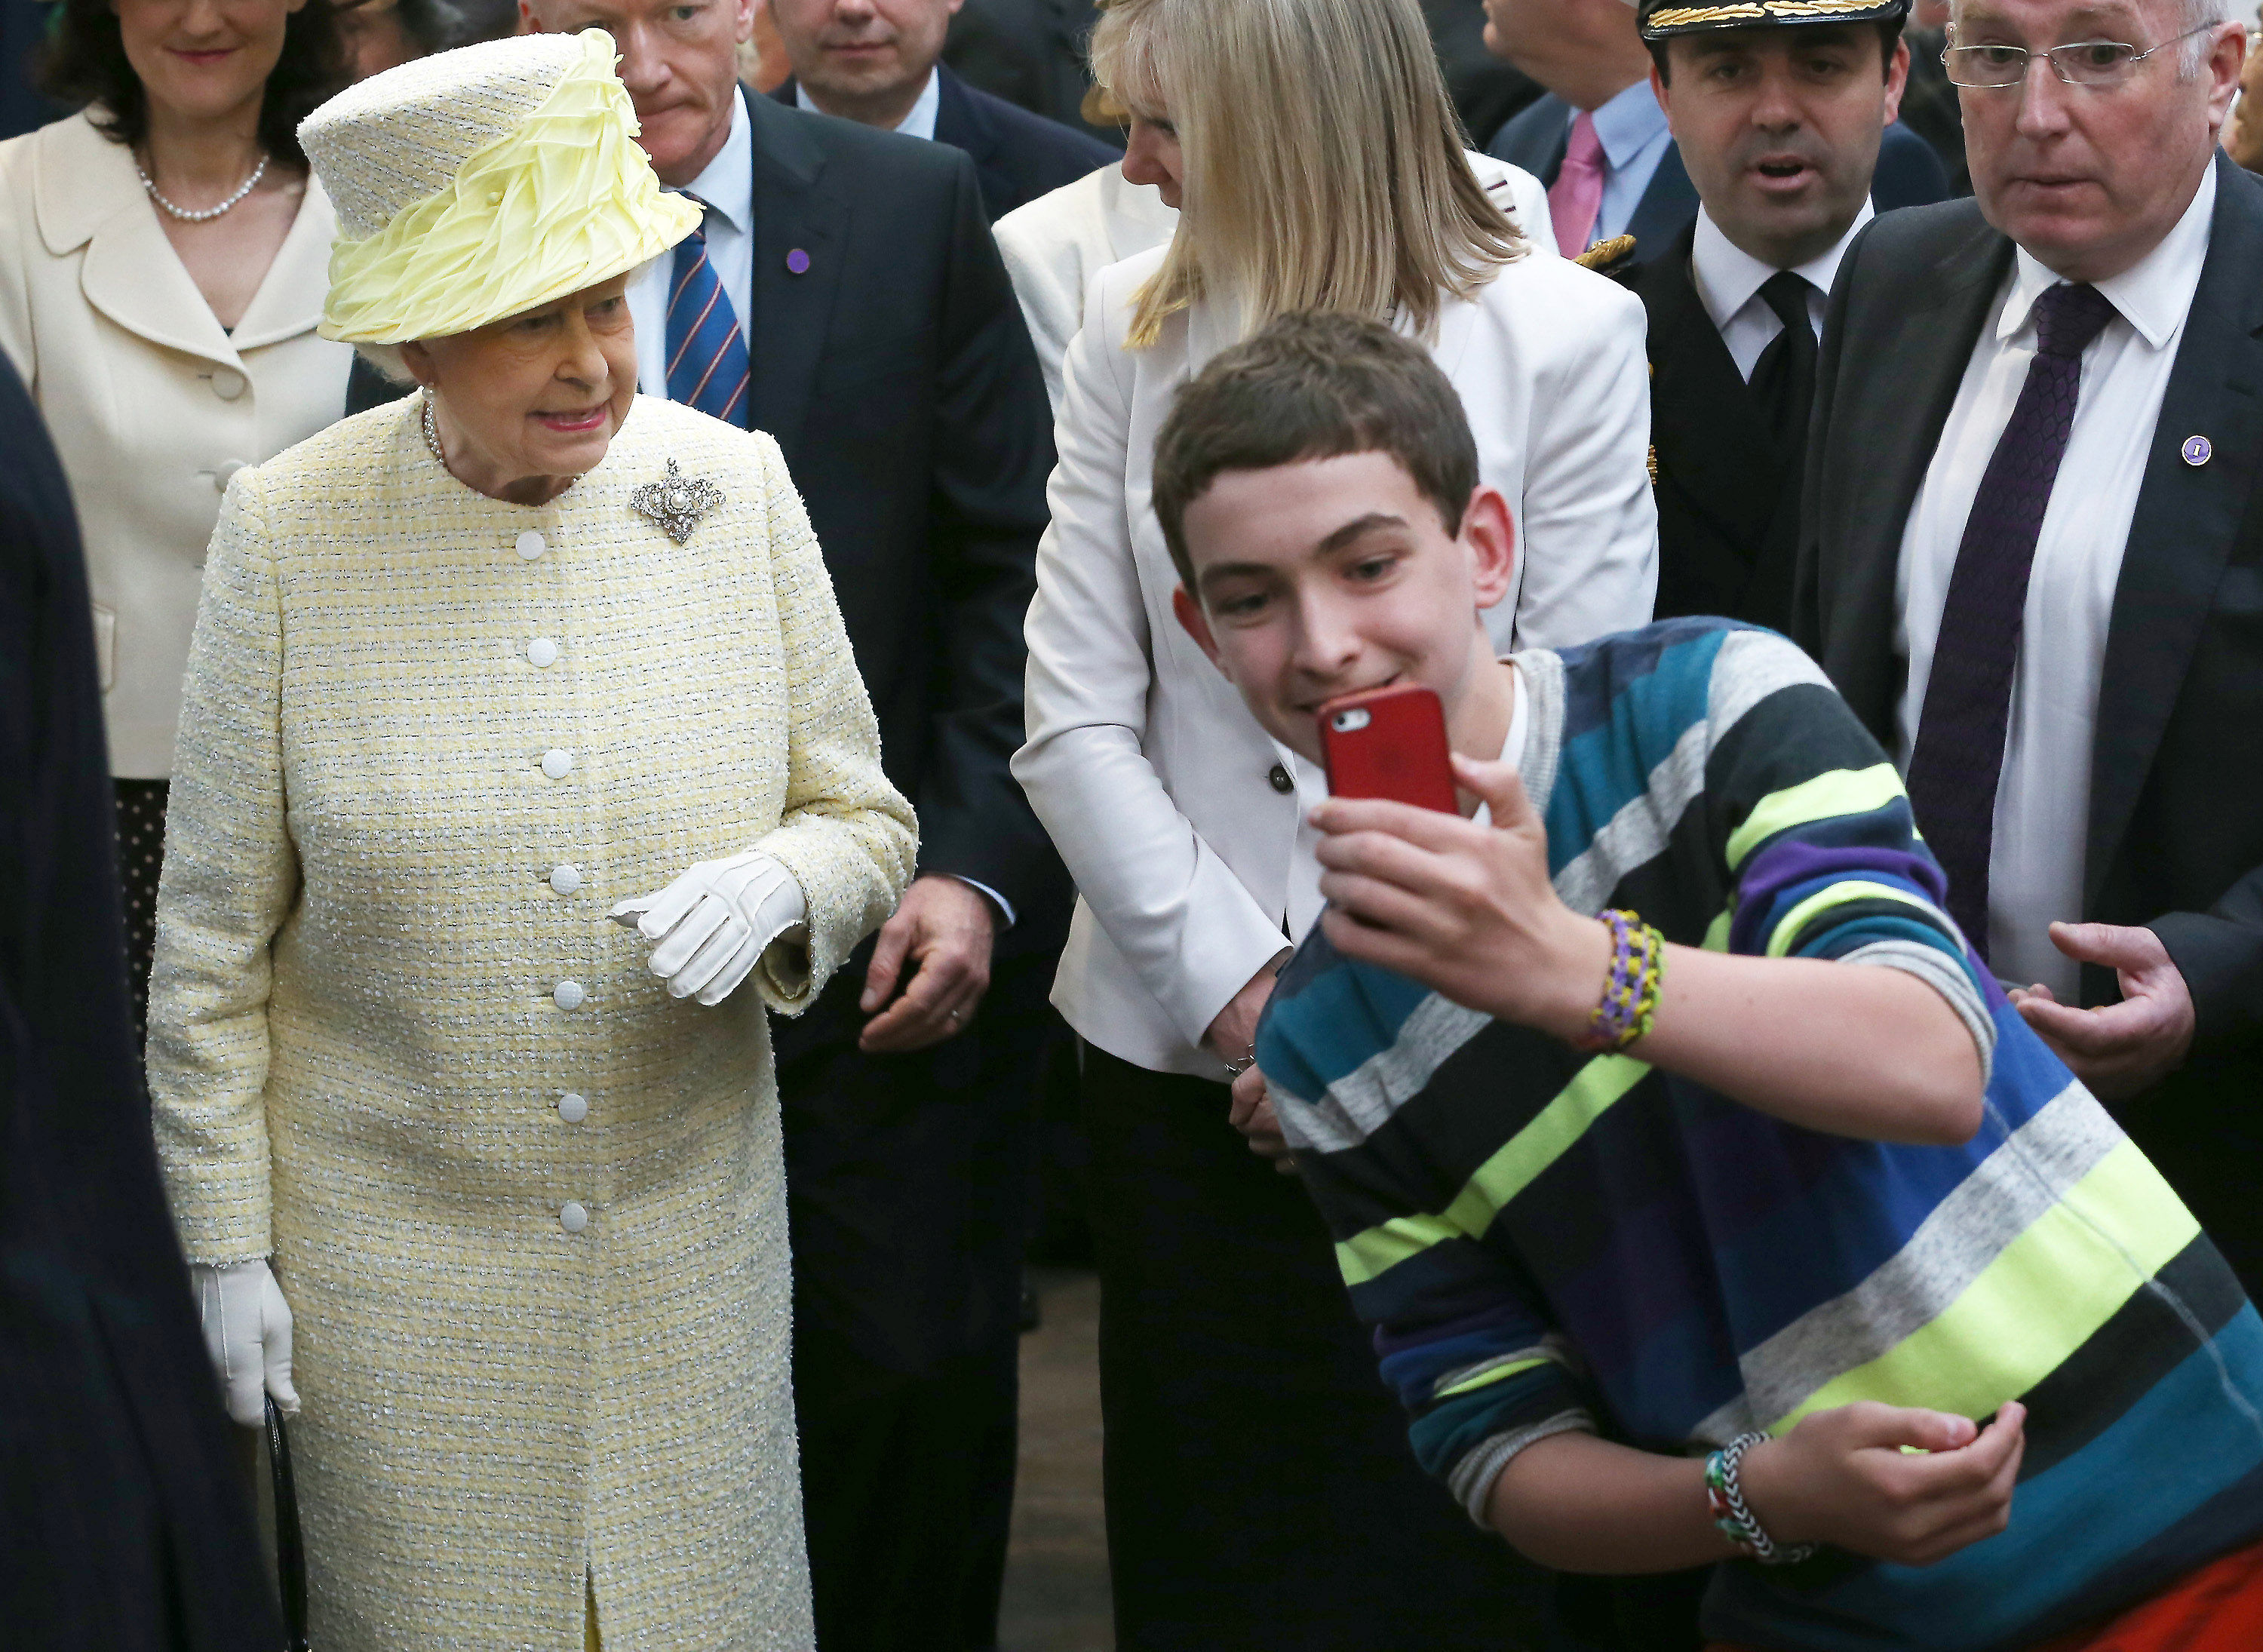 <strong>2014</strong>                                   A teenager takes a selfie in front of Queen Elizabeth II during a walk around St. Georges Market in Belfast. The Queen has apparently voiced her dismay that when she carries out engagements she is greeted by a sea of mobile phones.